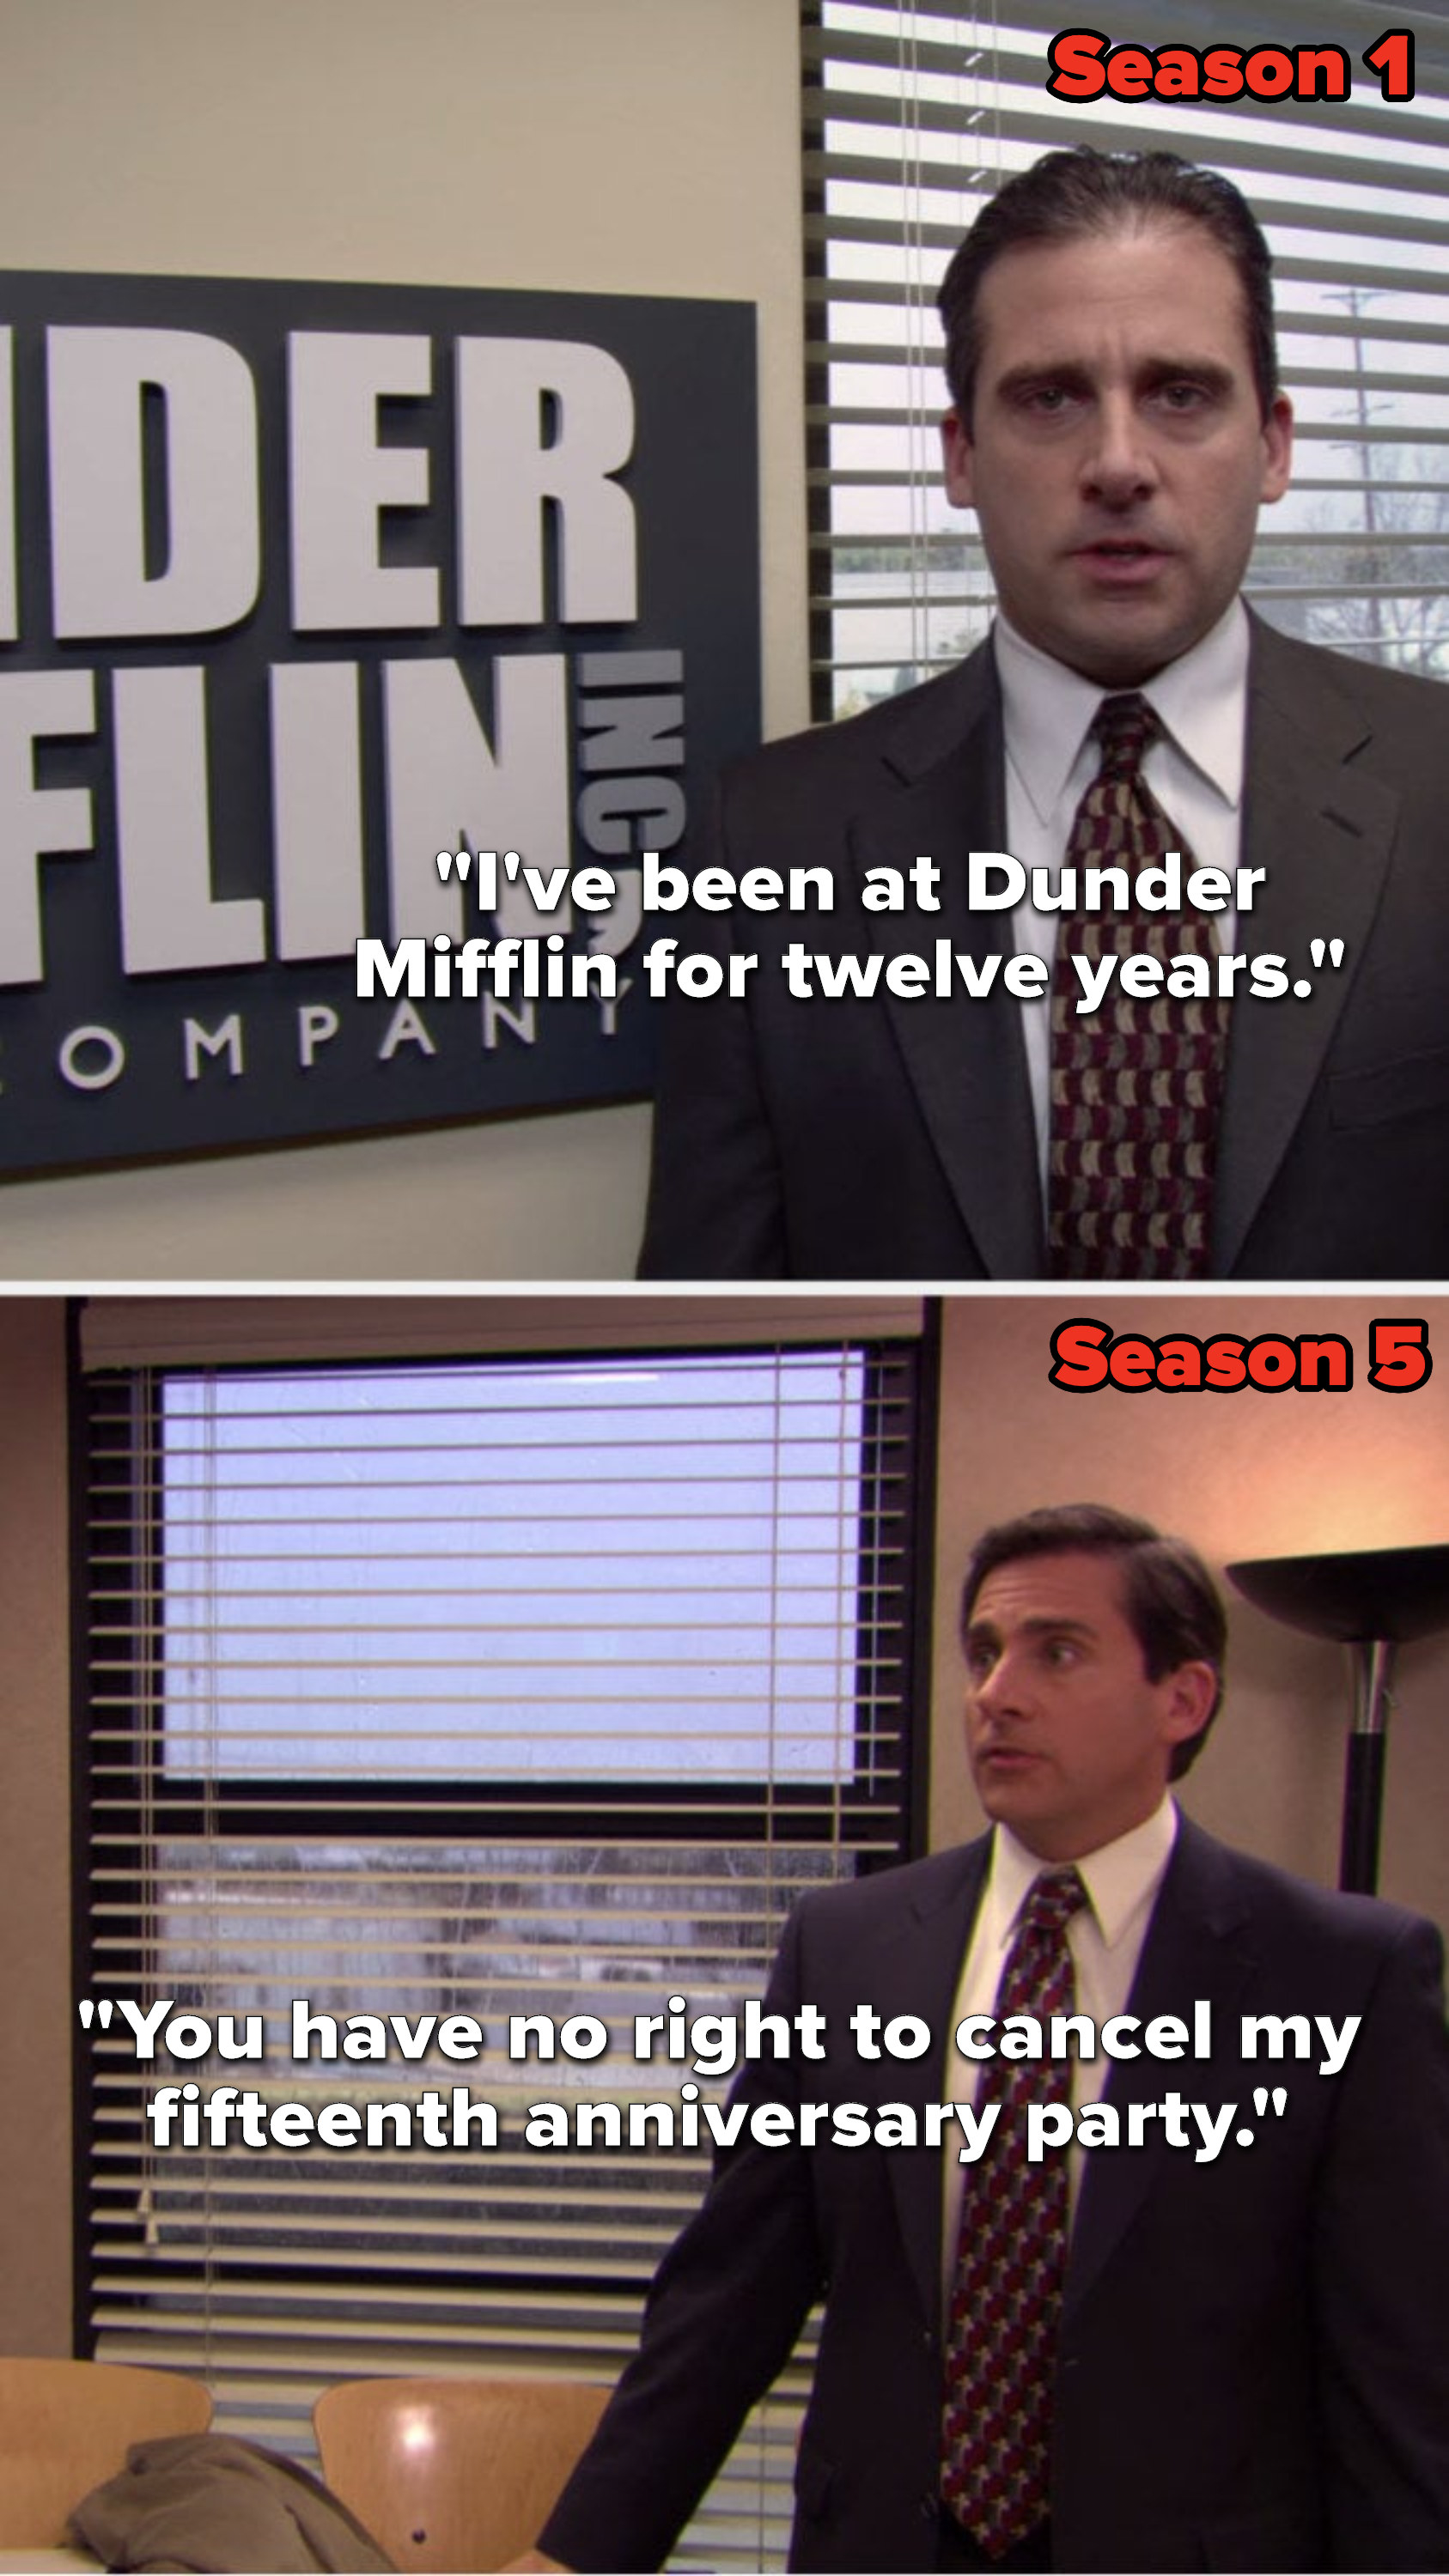 """In Season 1, Michael says, """"I've been at Dunder Mifflin for twelve years"""" and in Season 5 he says, """"You have no right to cancel my fifteenth anniversary party"""""""